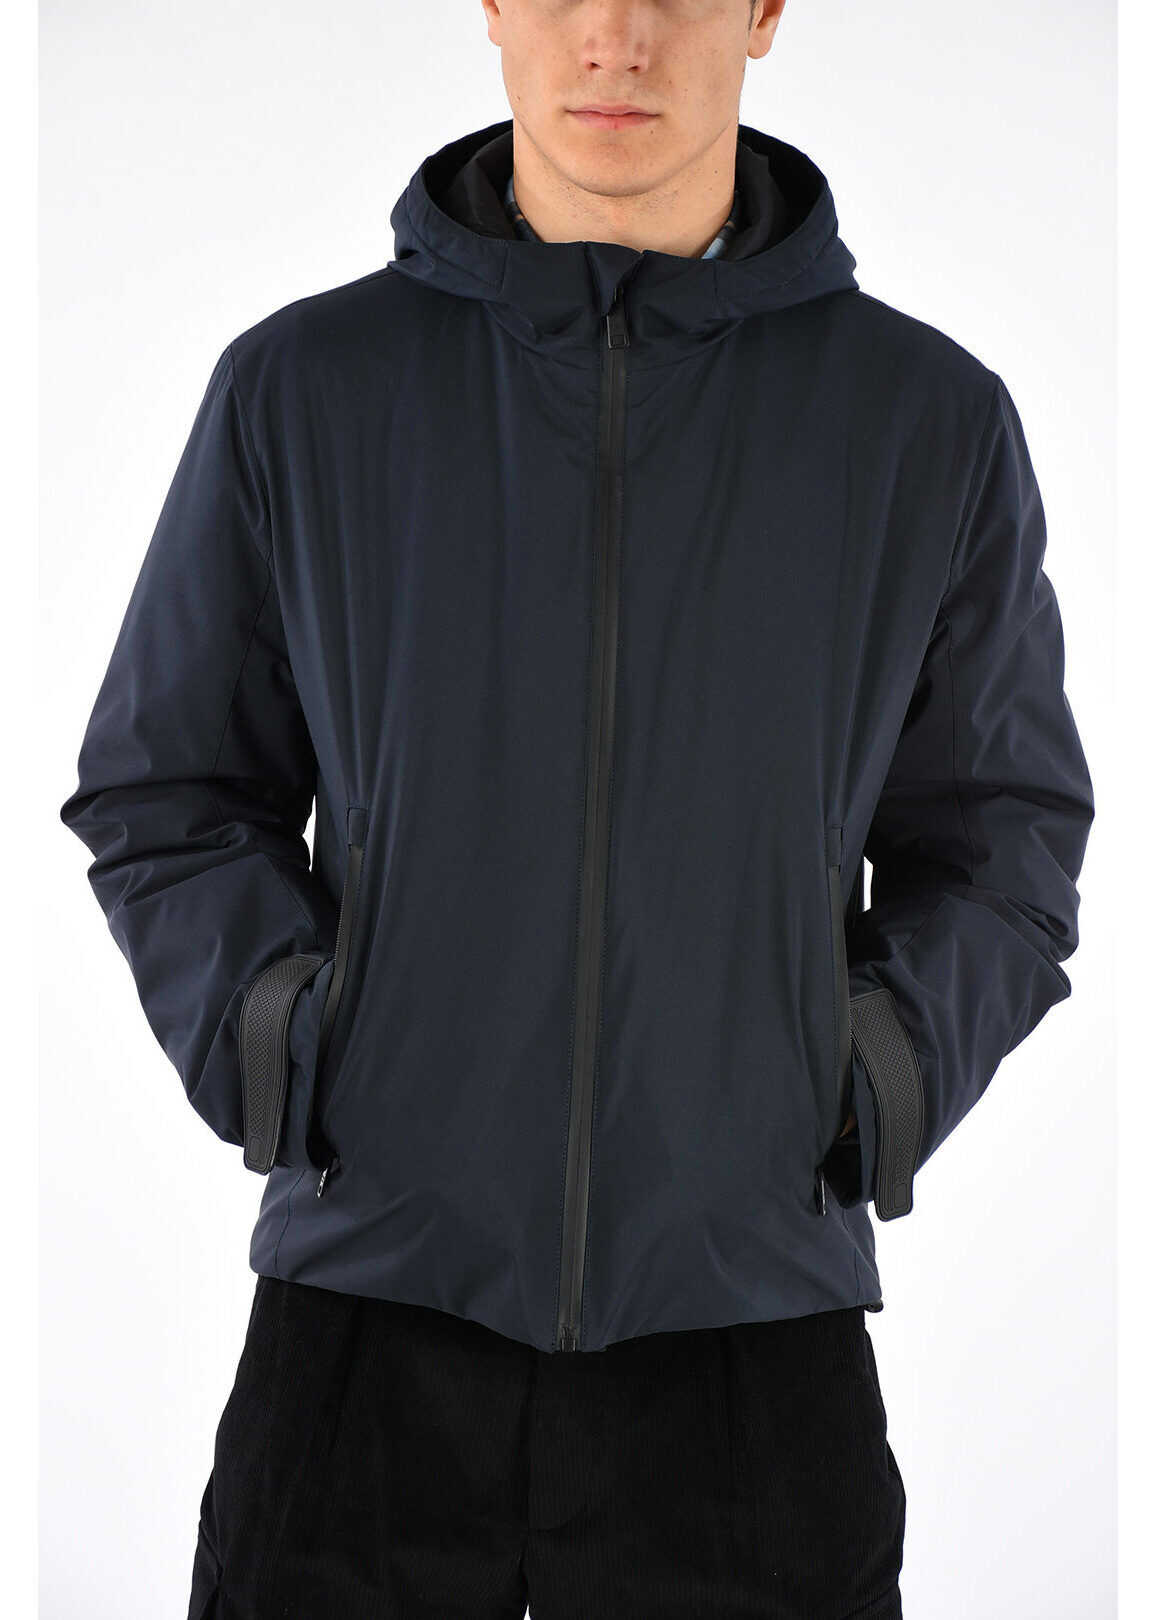 Prada Hooded Windbreaker Jacket BLUE